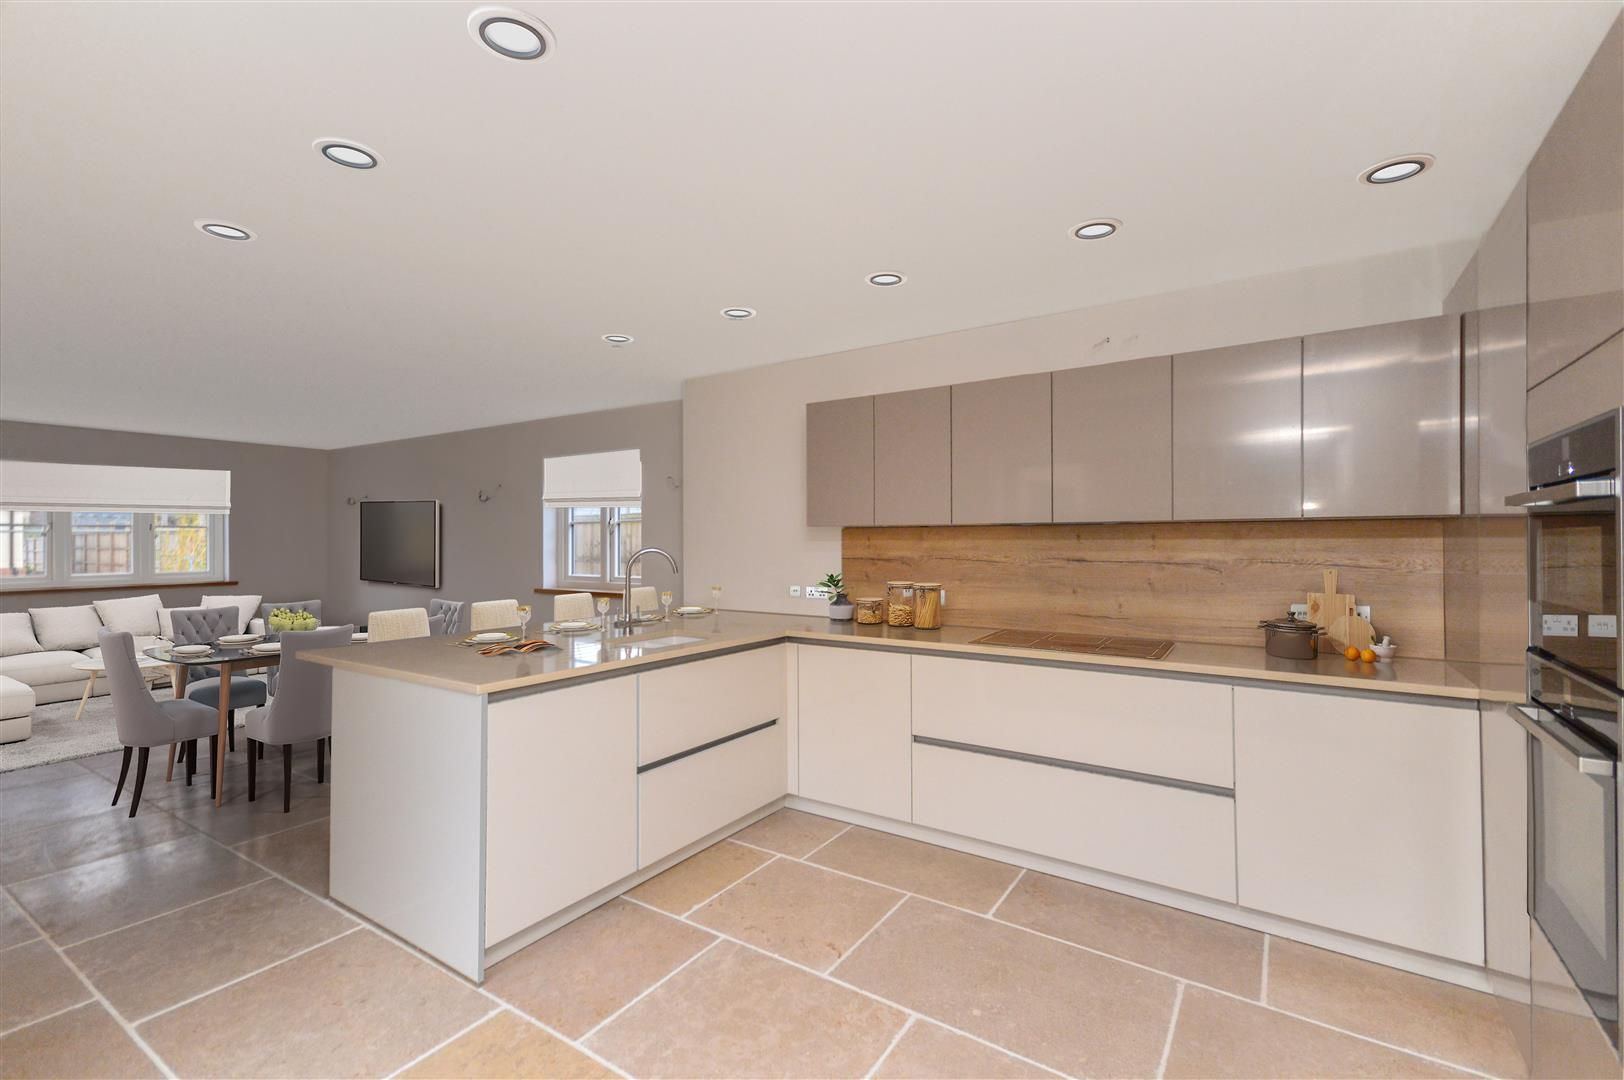 3 bed detached for sale in Marden 4